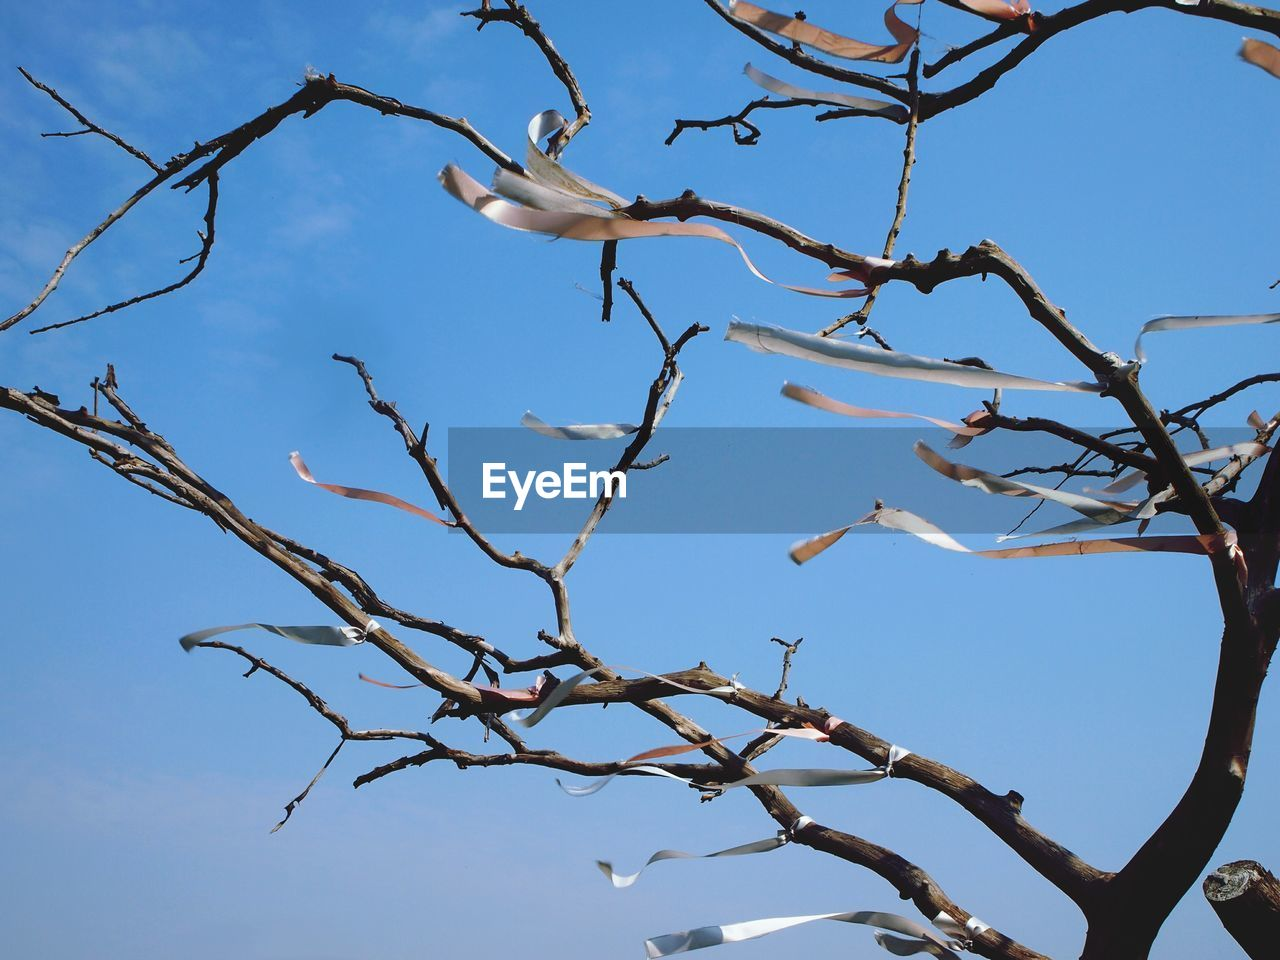 tree, branch, plant, bird, sky, low angle view, no people, animal wildlife, nature, animal themes, vertebrate, animals in the wild, animal, bare tree, day, clear sky, outdoors, perching, beauty in nature, tranquility, dead plant